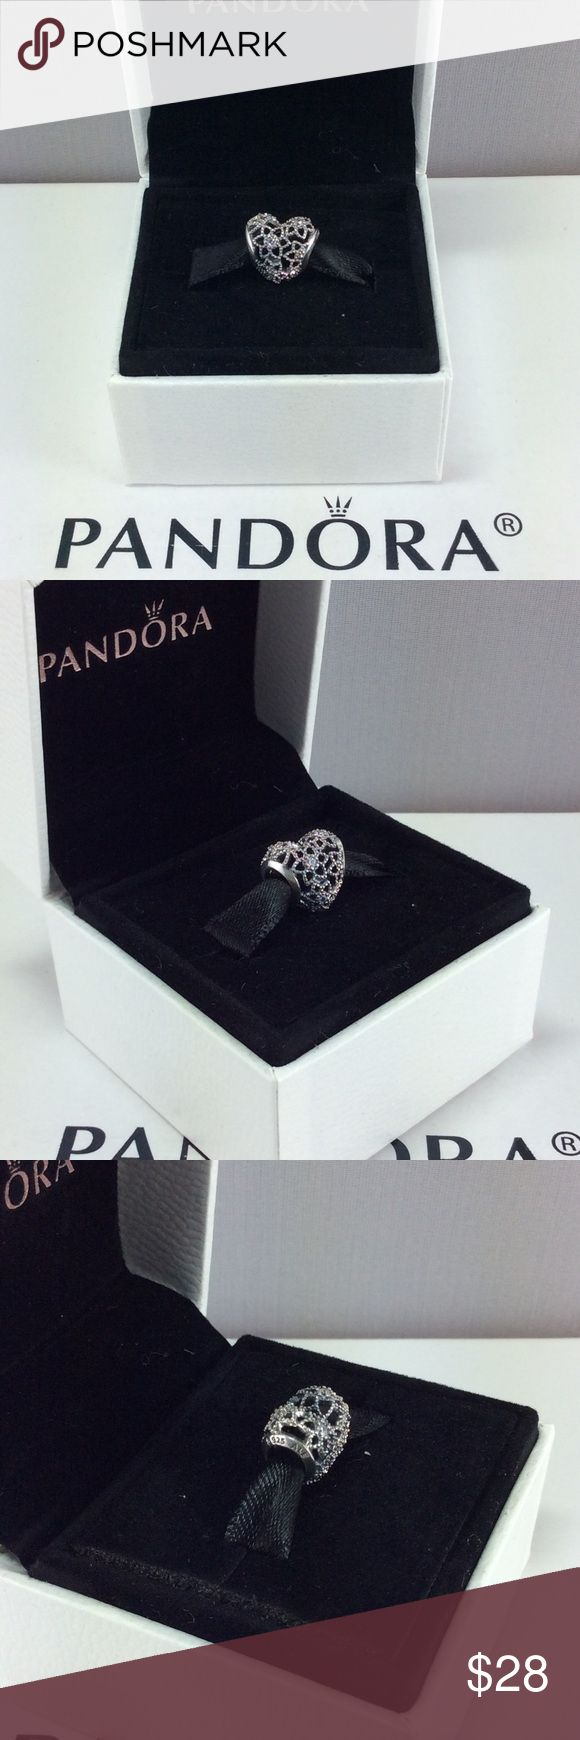 Pandora Blooming Heart Charm Authentic Pandora Blooming Heart Charm   Pandora Charms. Pandora New Charms. Pandora Retired Charms. Pandora Bracelets.  Signature markings Ale S925  Condition: New   Retail: $35.00 + tax   🔵PRICE IS FIRM UNLESS BUNDLED  ⚫️NOT ACCEPTING LOWBALL OFFERS!!! 📦BOX INCLUDED IN THE SALE Pandora Jewelry Bracelets